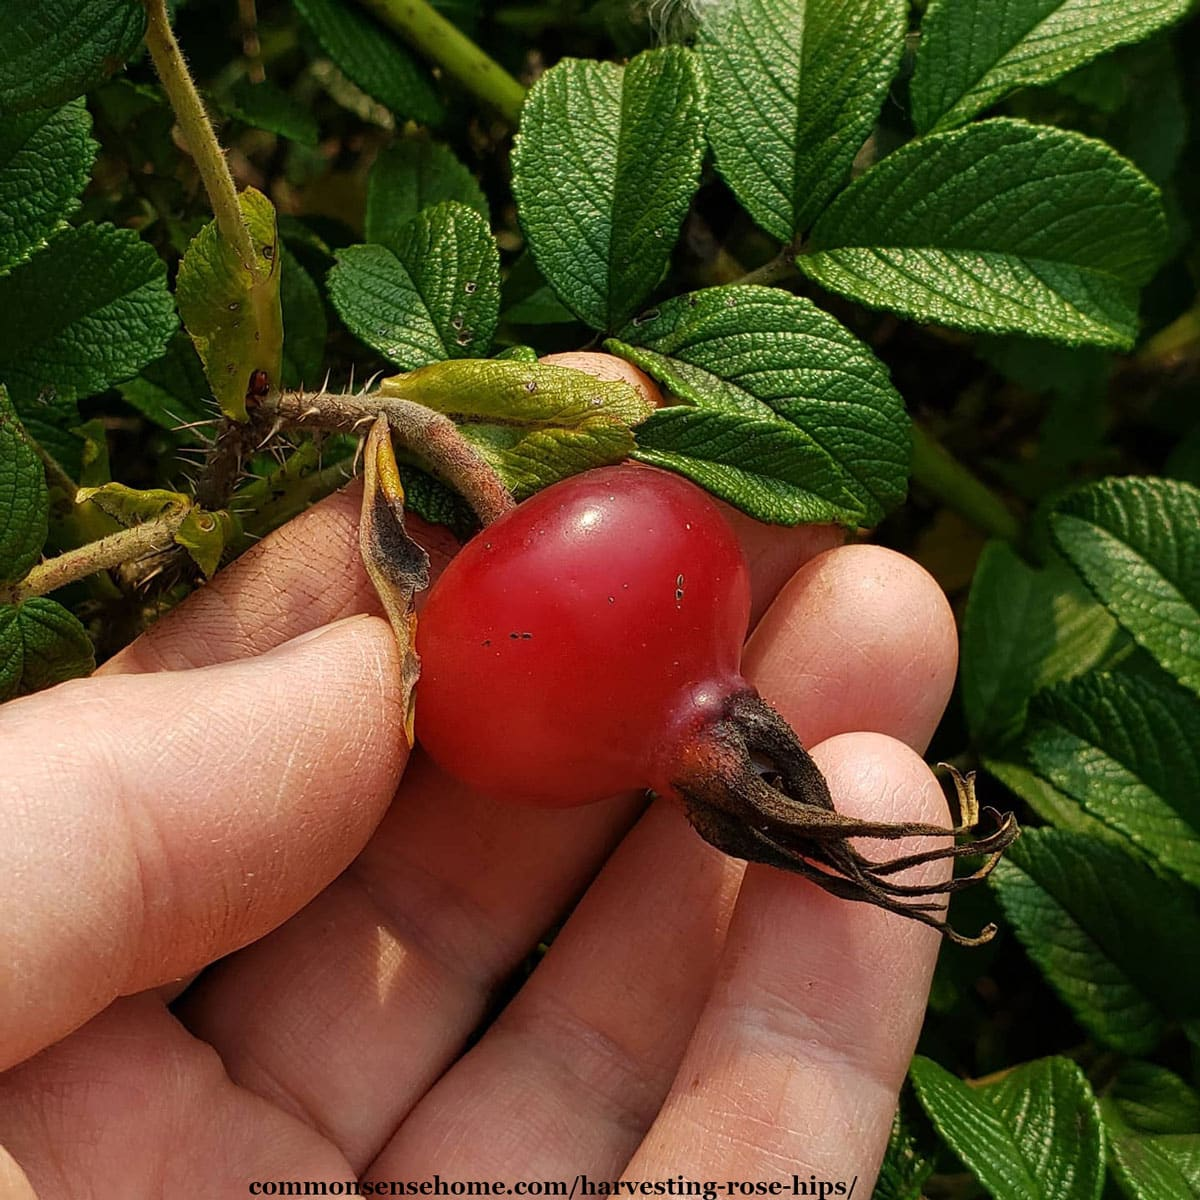 rugosa rose hip